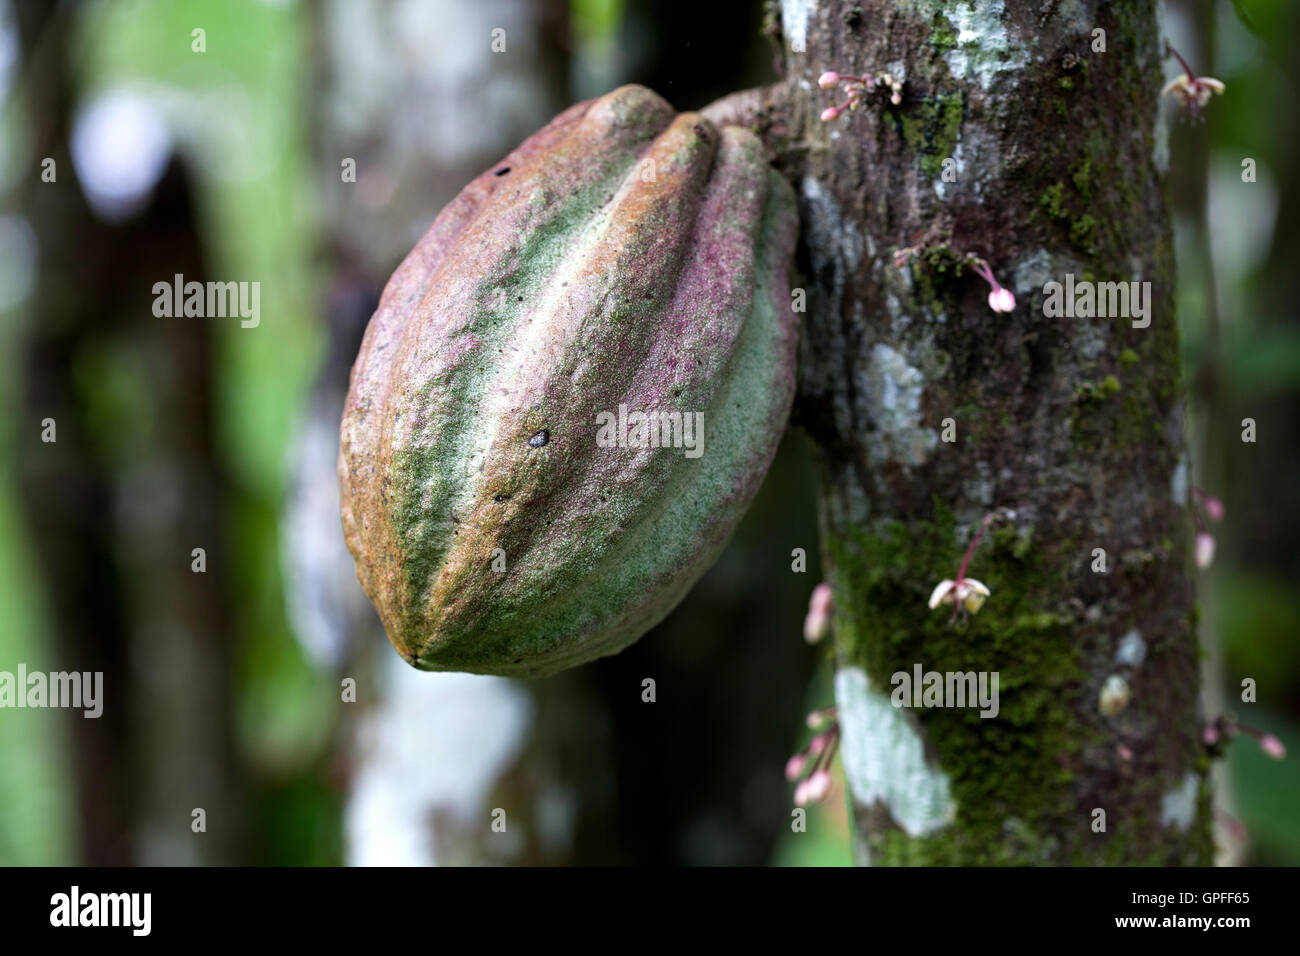 Cocoa pods on a cacao tree in Costa Rica - Stock Image